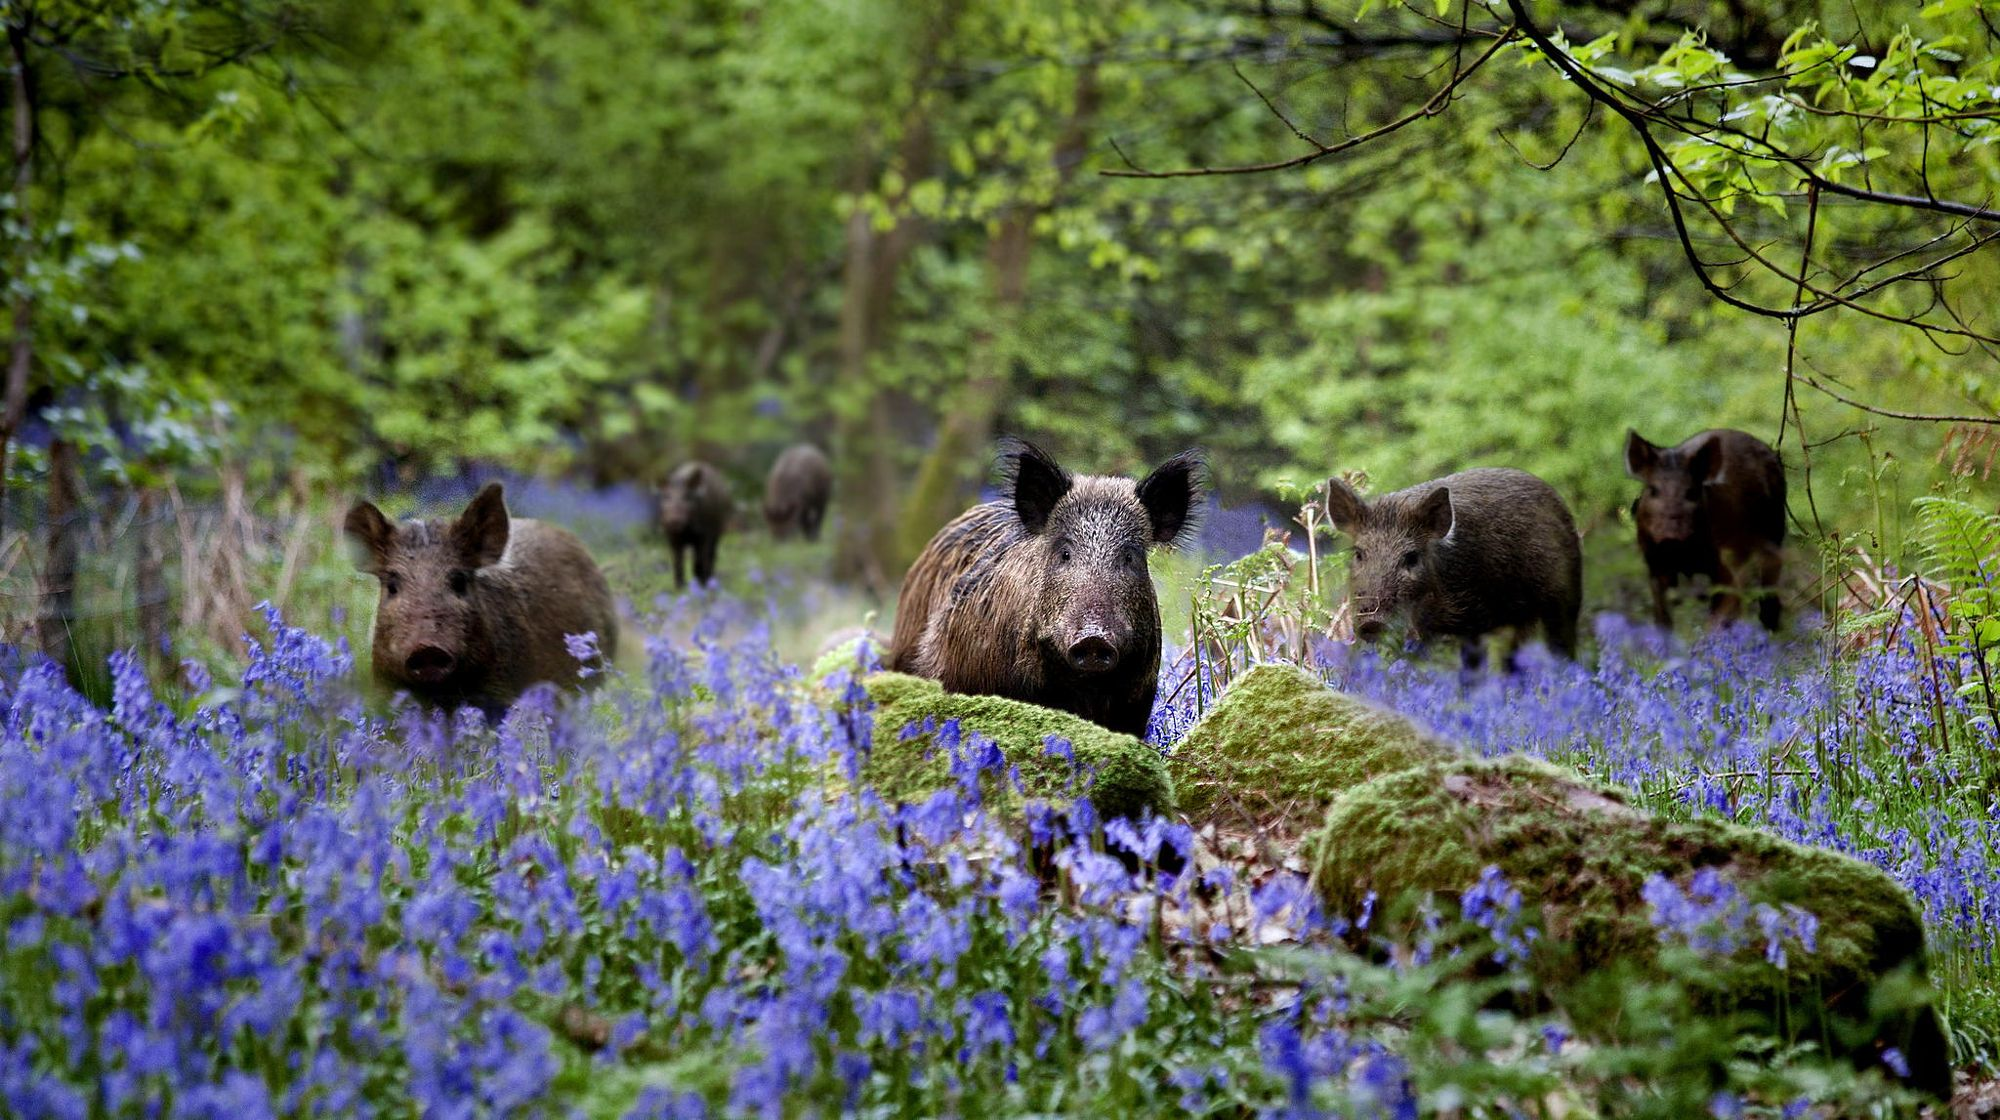 Boars And Bluebells | Bluebells, Boar, Mini pig